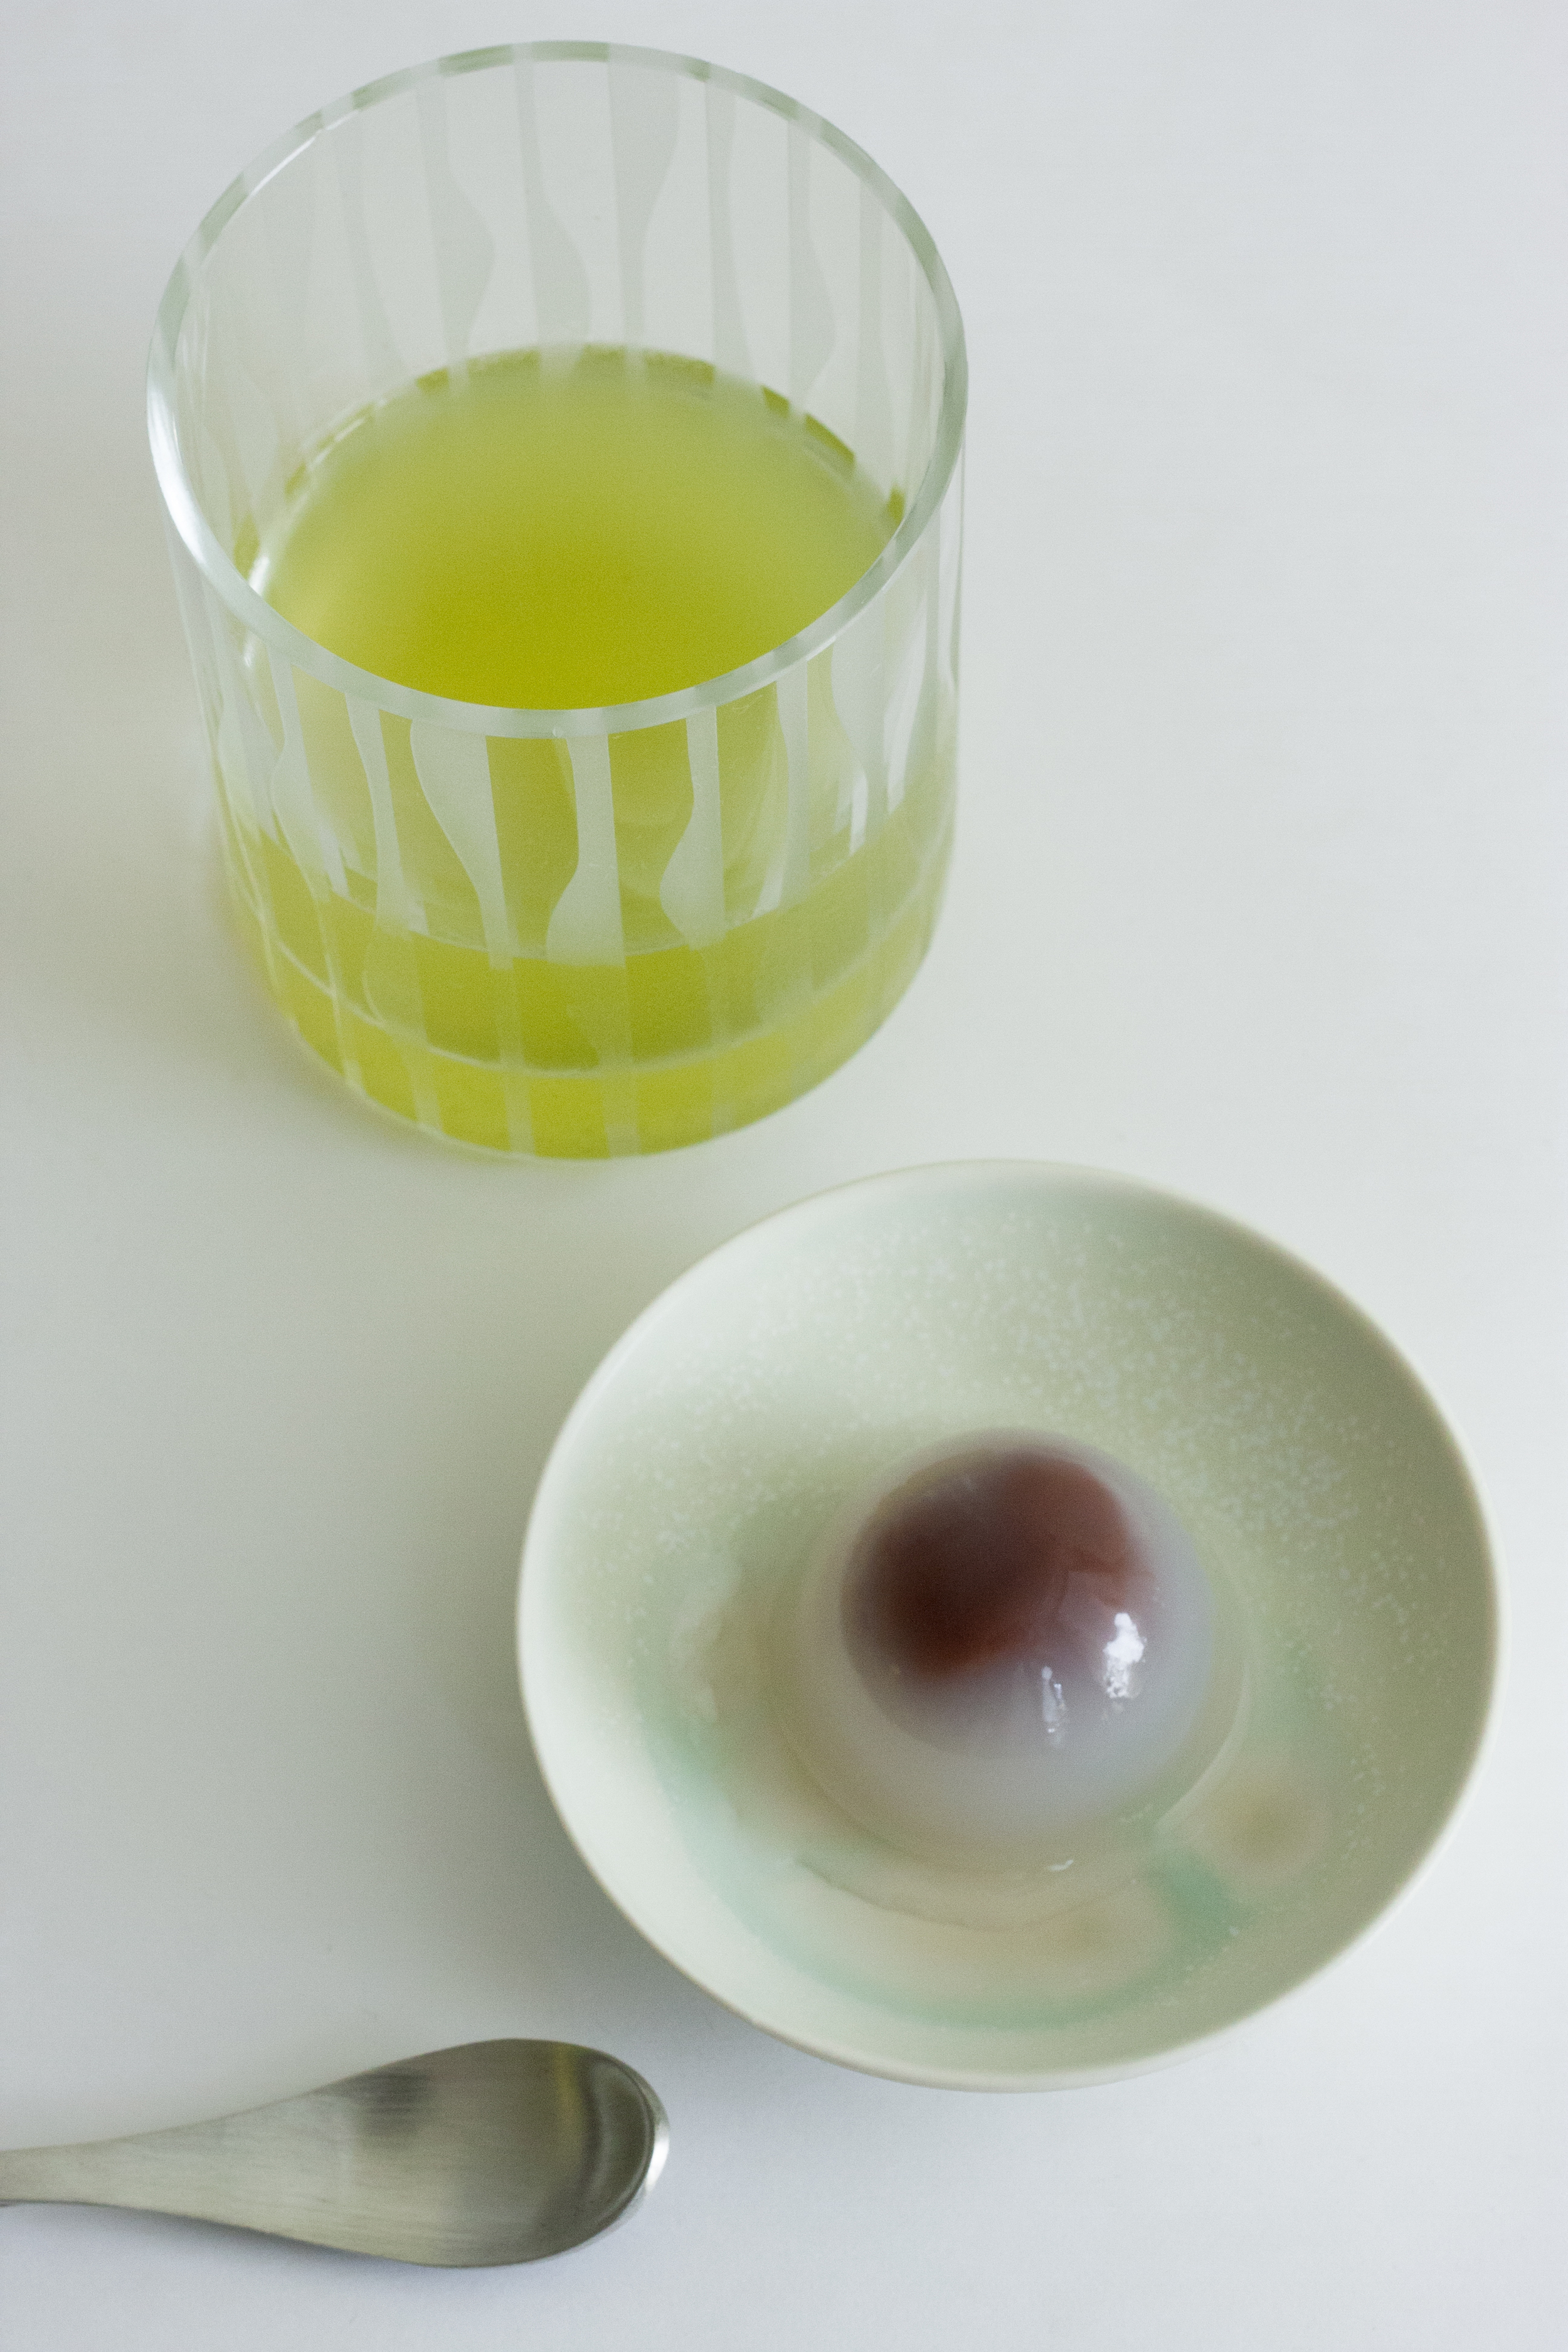 Small plate by Aya Yuki from Ishikawa. On the plate is one of our Summer favorites, Kuzu Manju from Hanazono Manju.